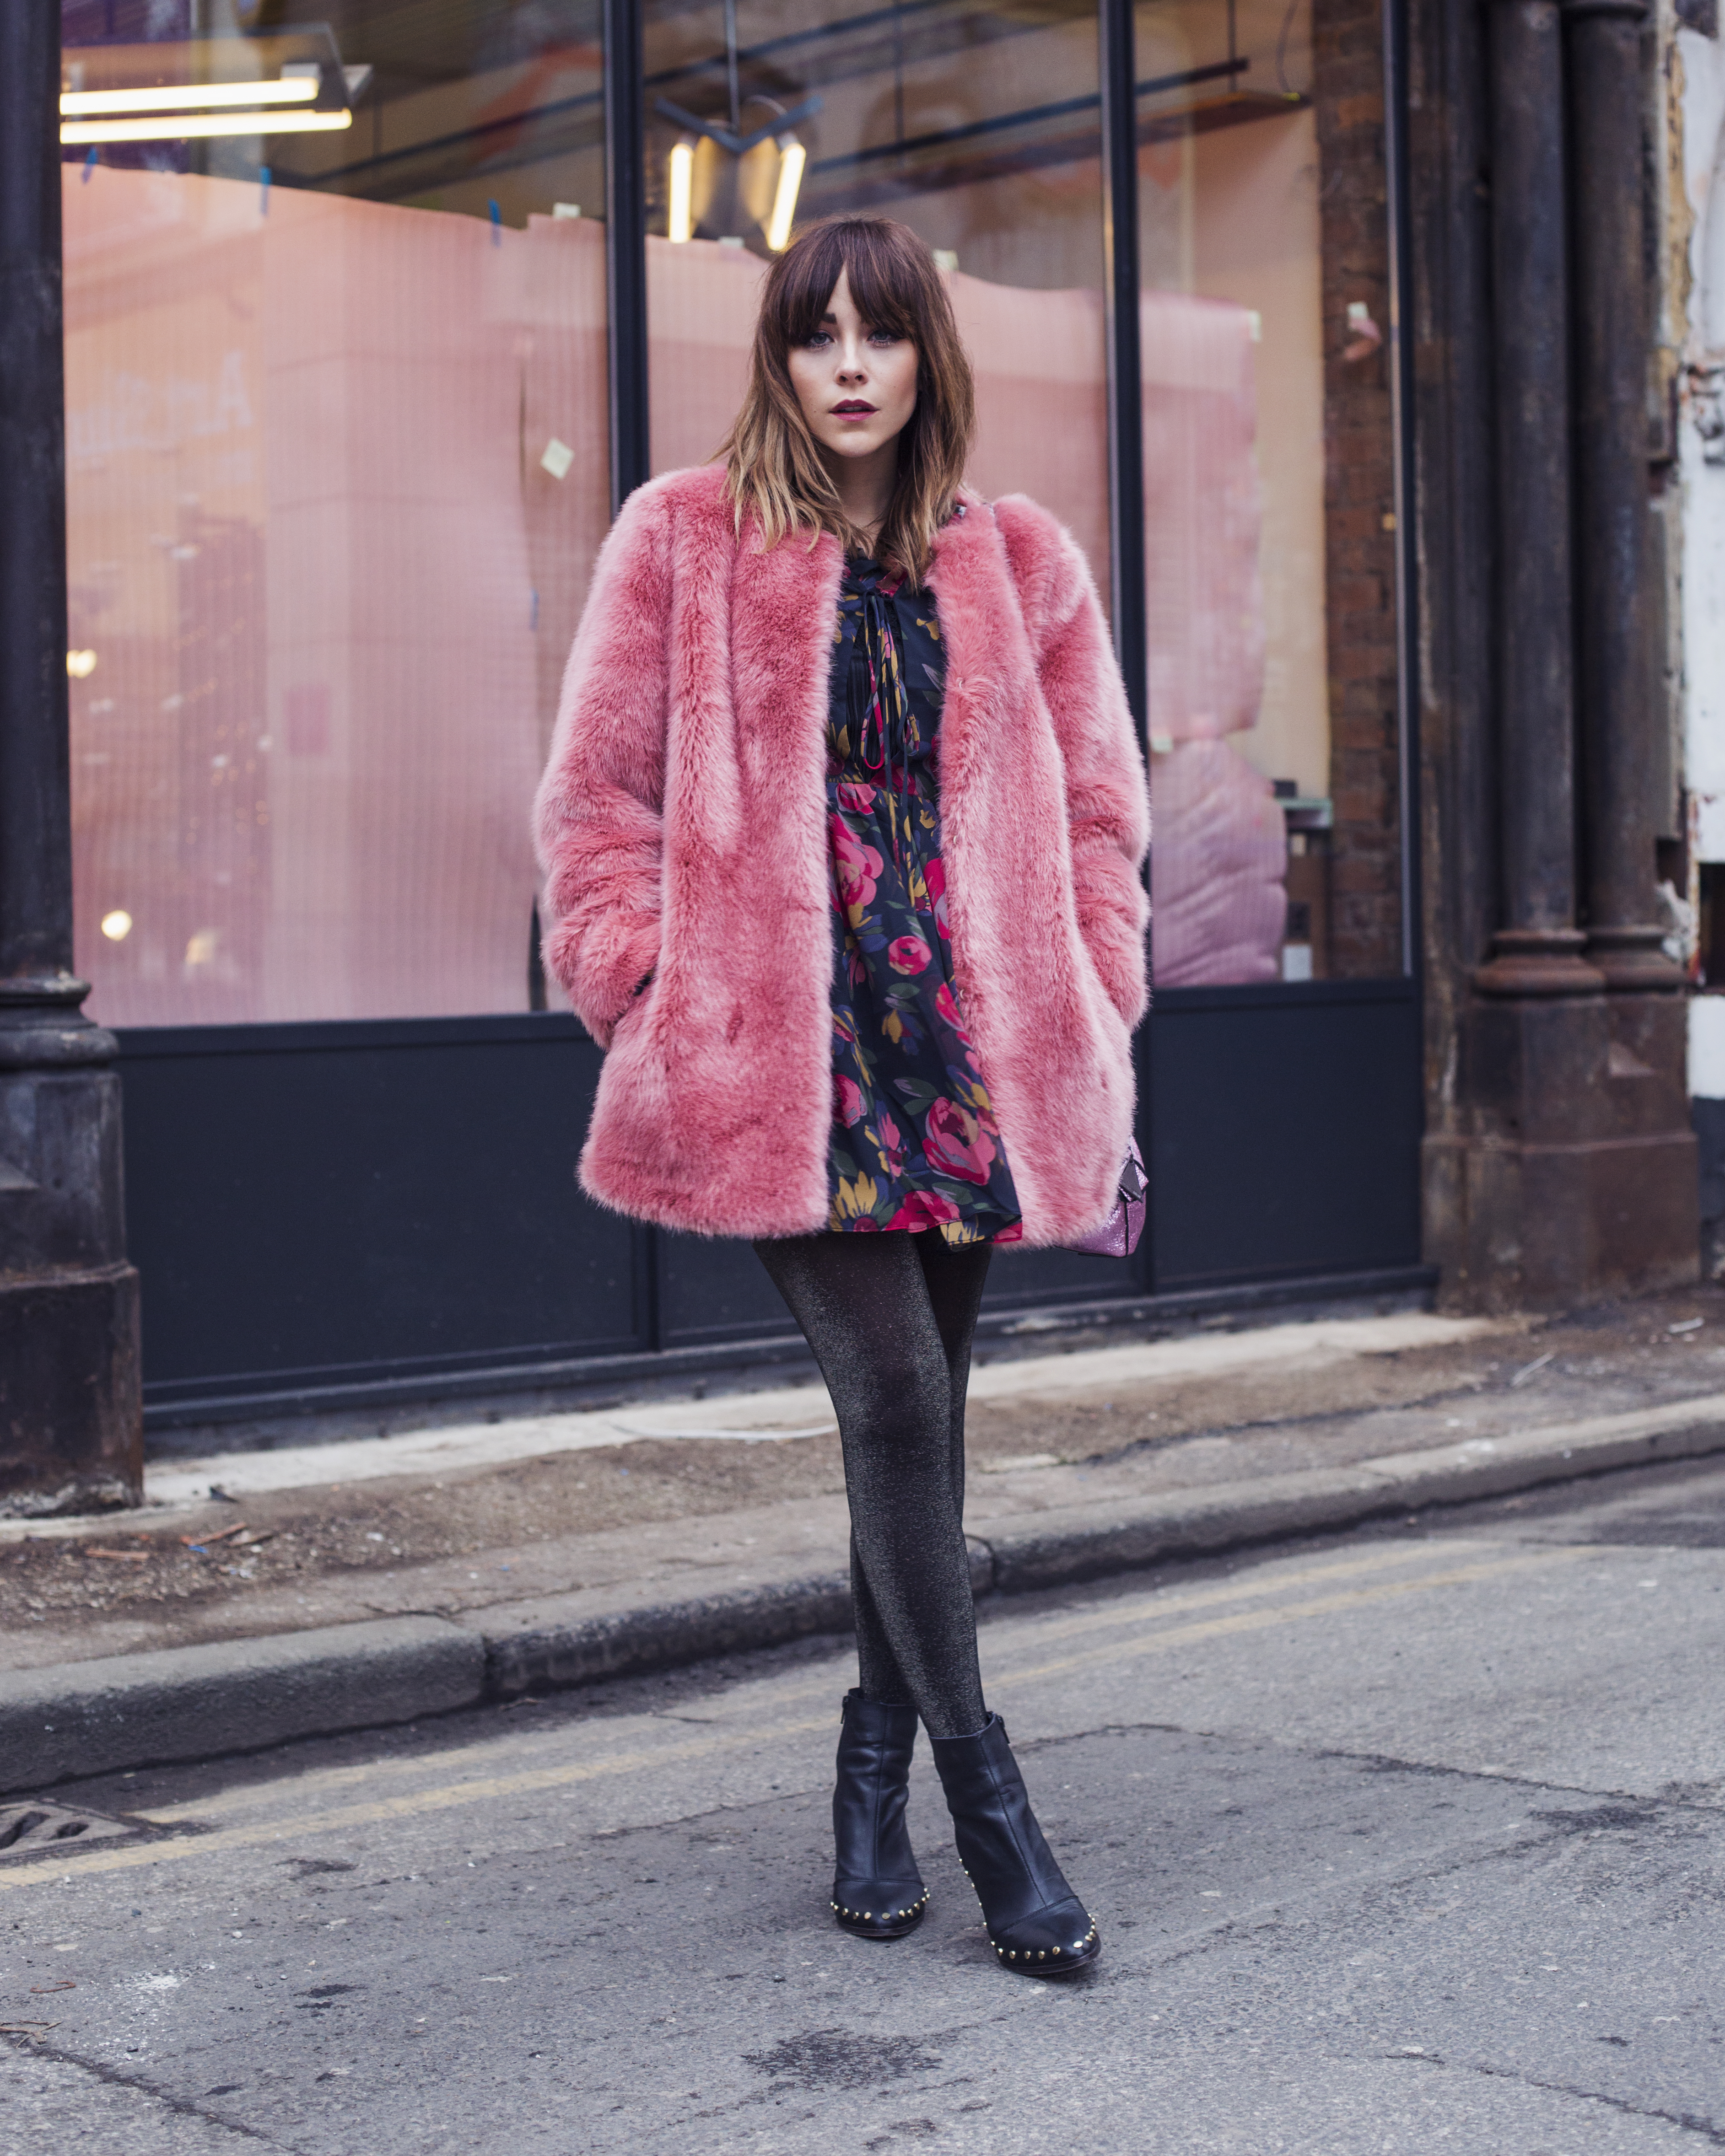 ASOS LEOPARD PRINT COAT WITH PINK HOLIDAY NUDE CONVERSE